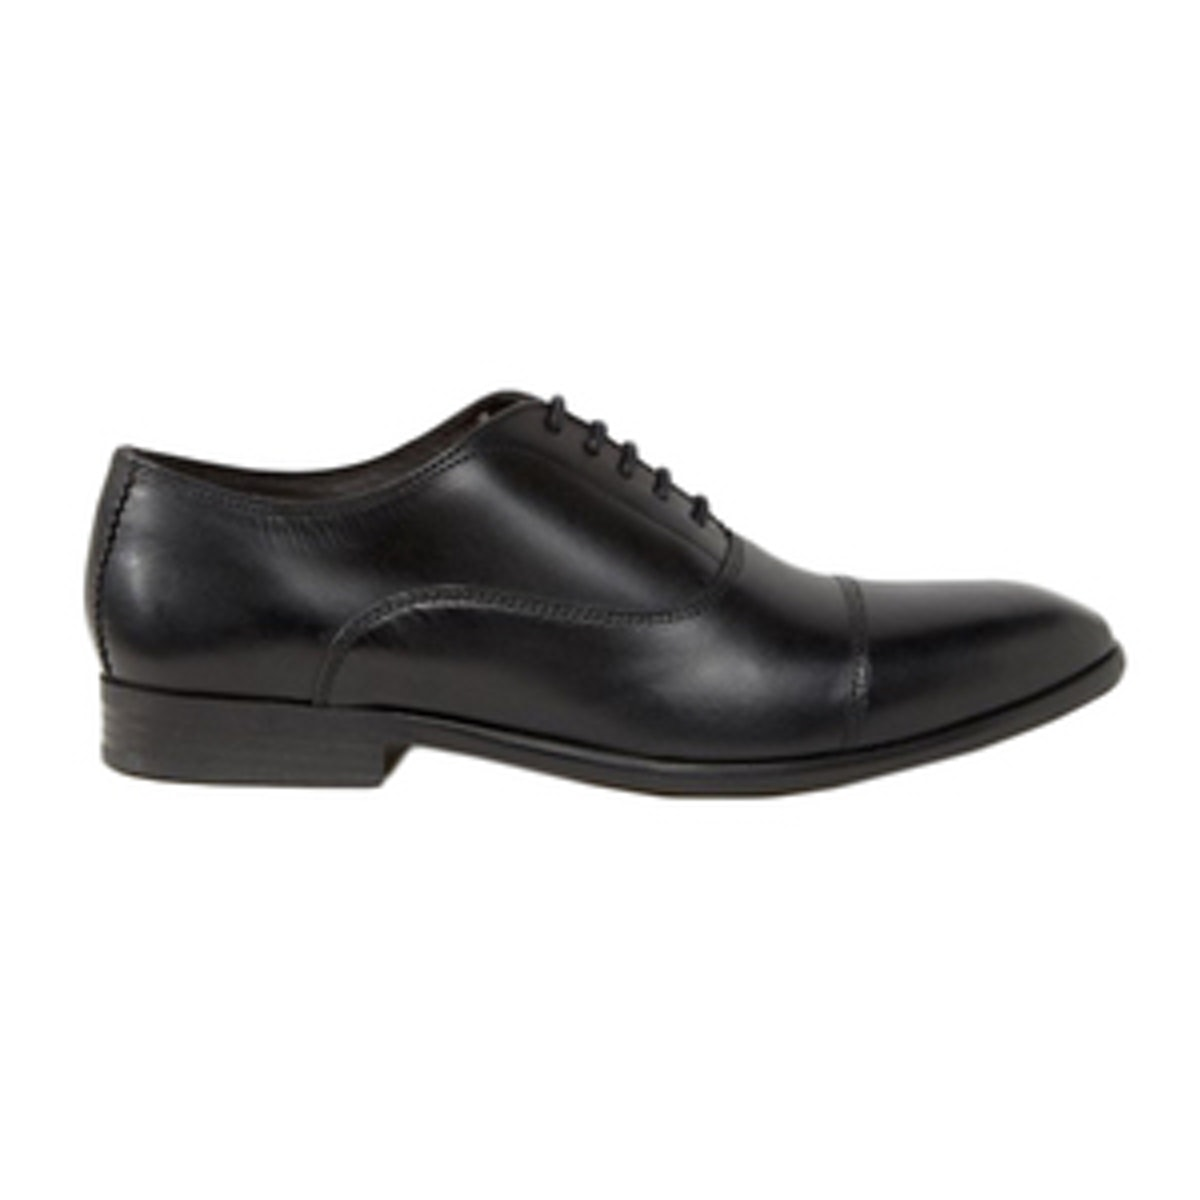 Richards Leather Oxford Shoes